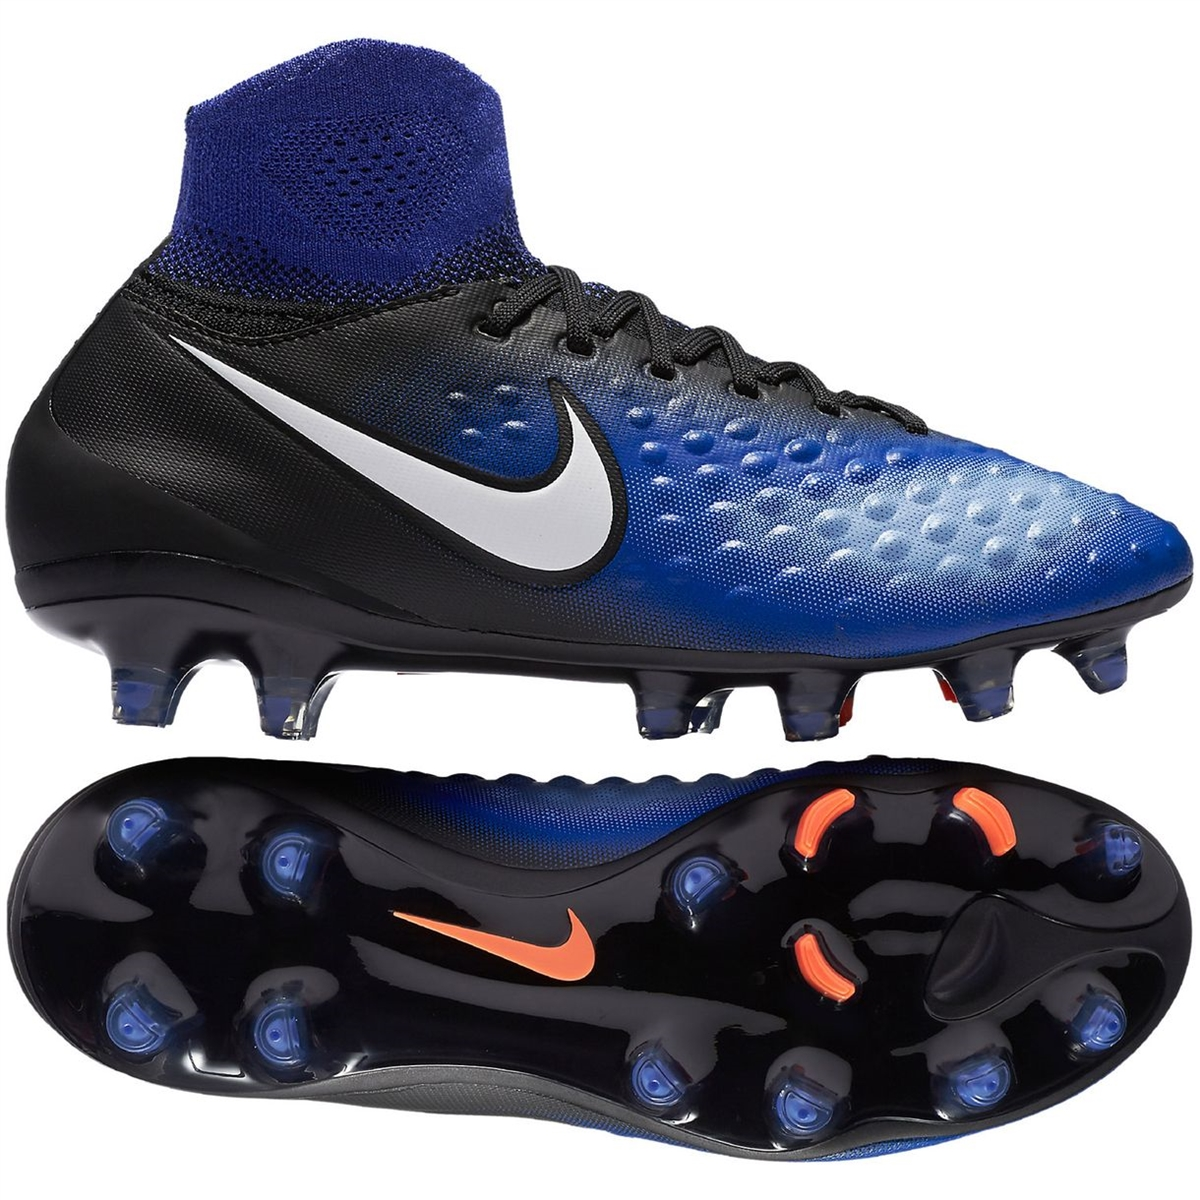 Nike Magista Obra II FG Youth Soccer Cleats (Black White Paramount ... 2f6038d2ce